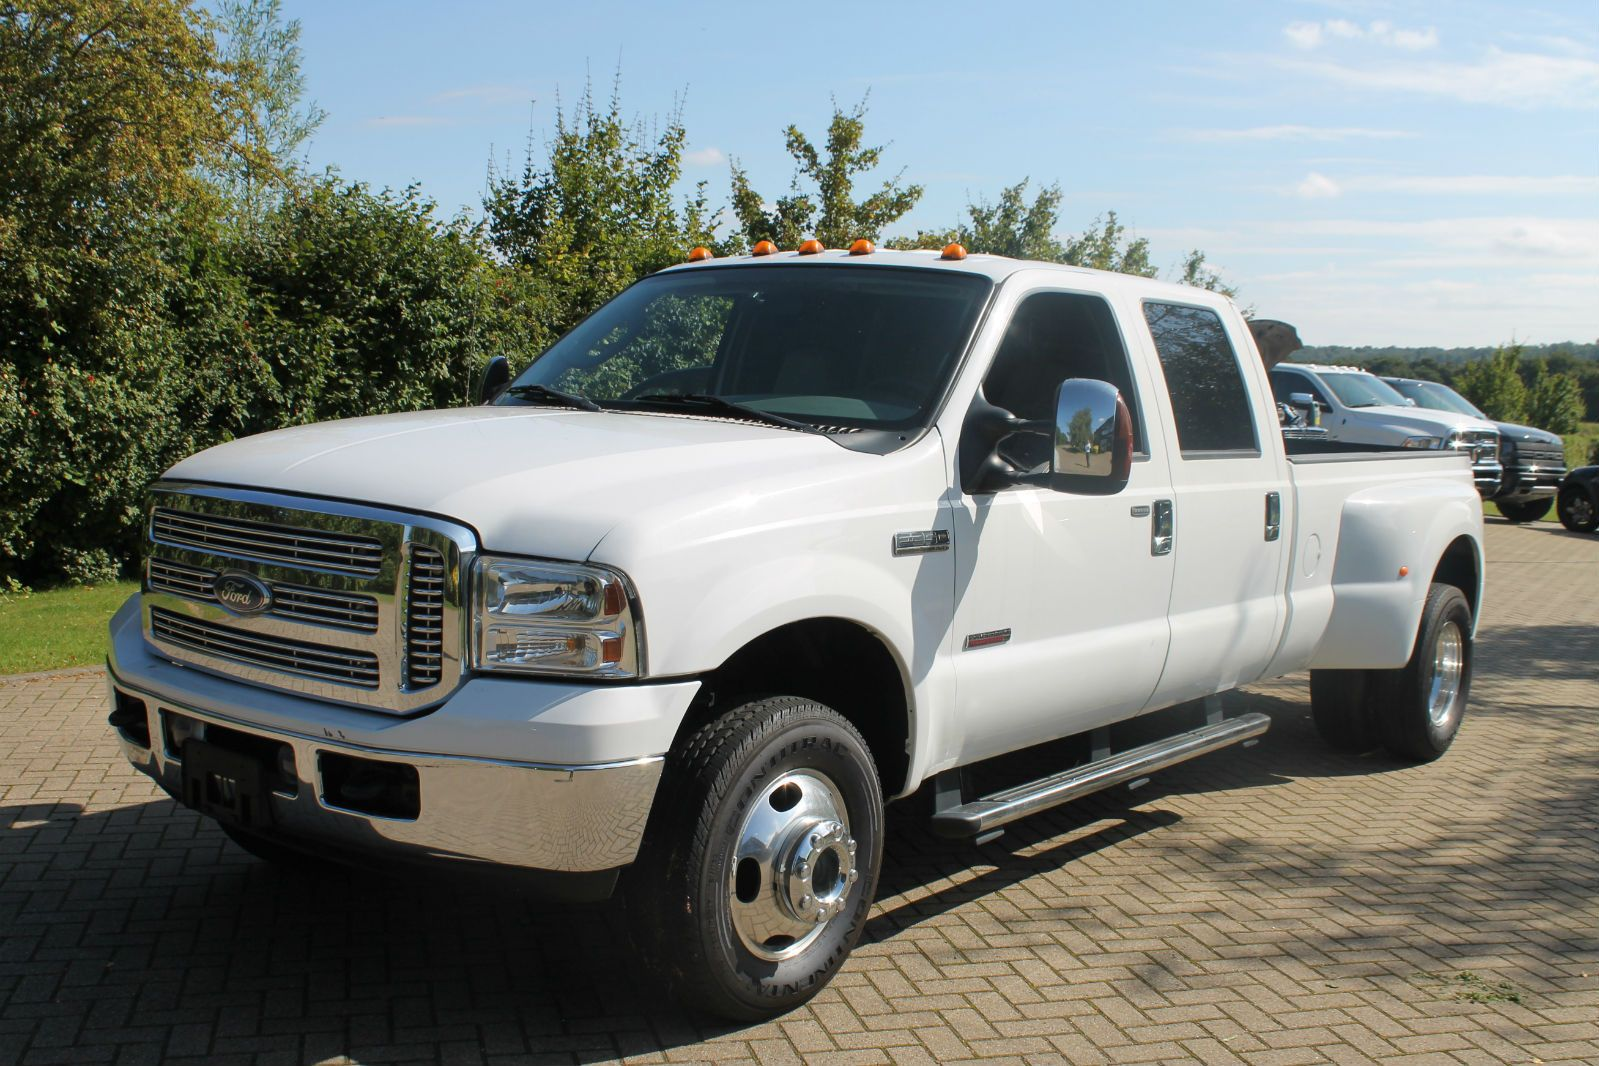 Details about 2005 Ford F350 Dually Lariat 4x4 Diesel